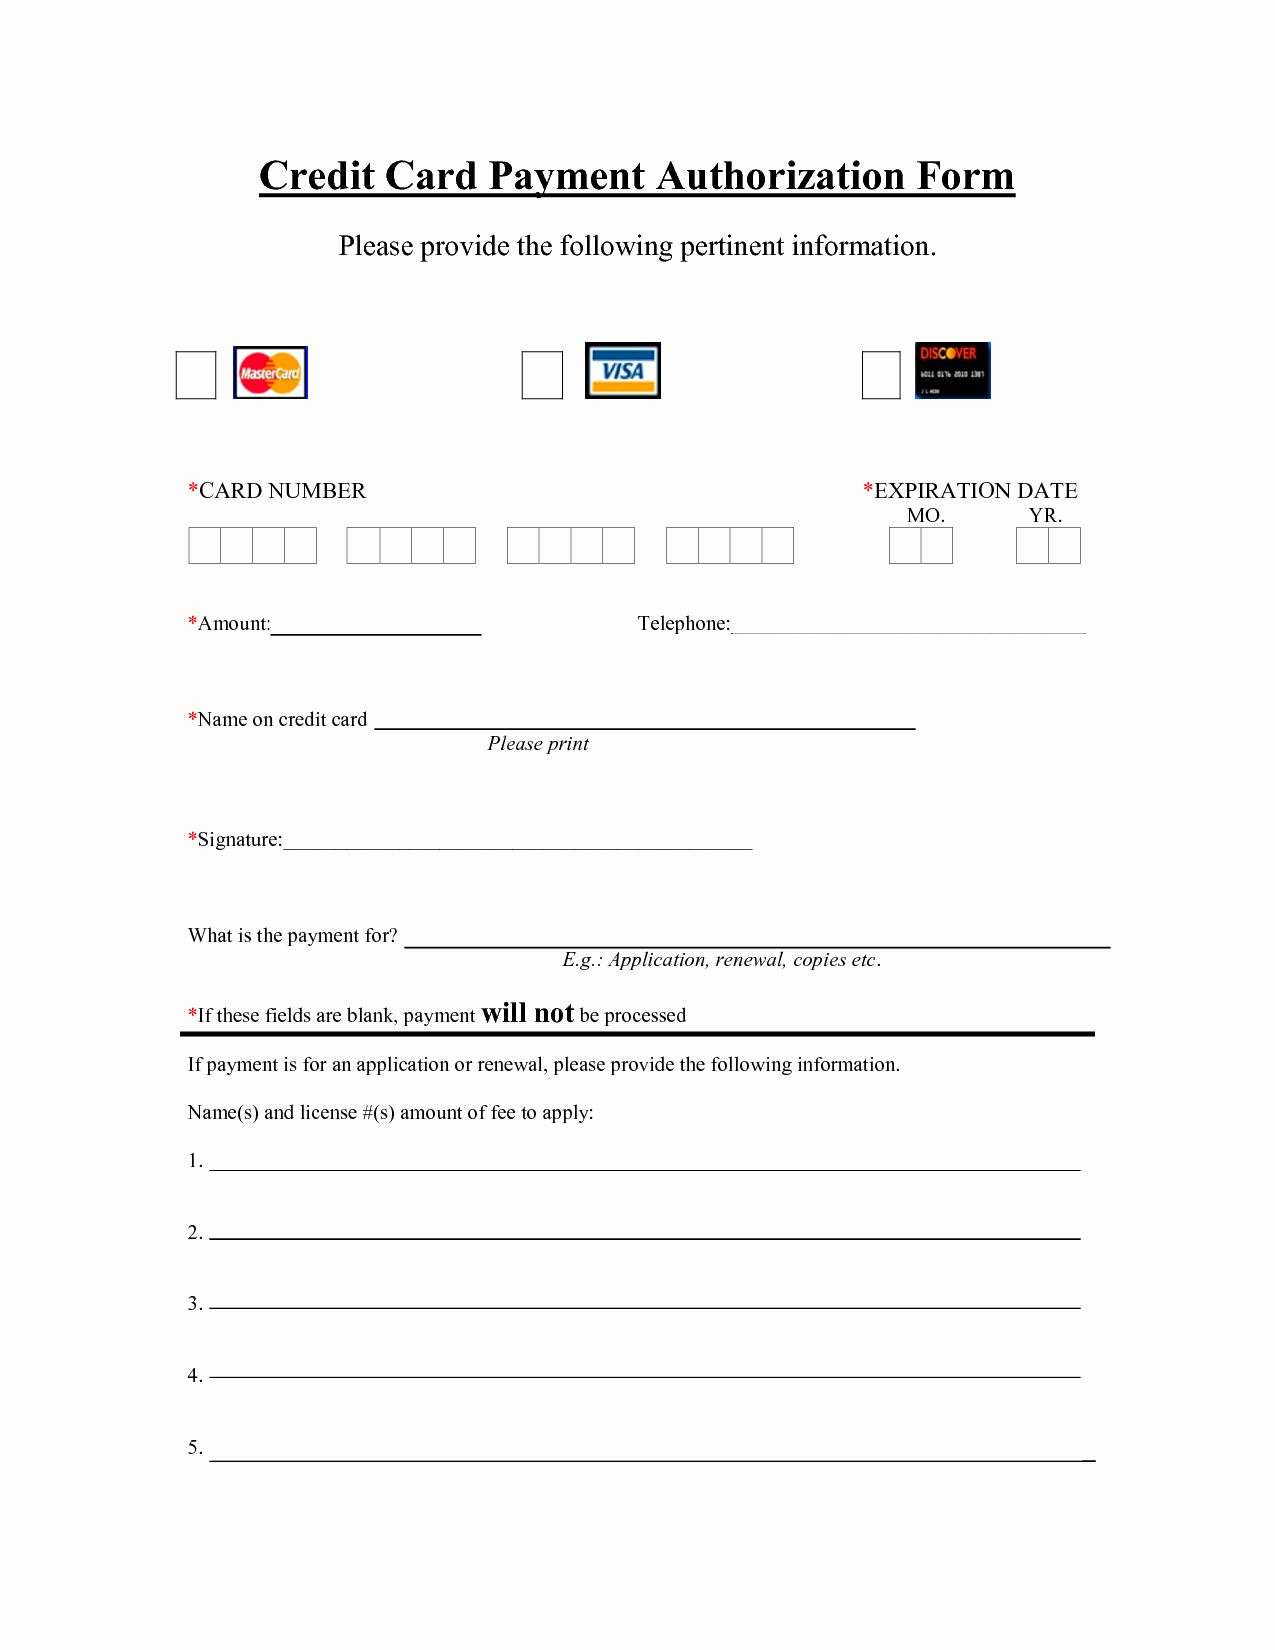 Credit Card Payment Form Template Lovely Template Credit Card